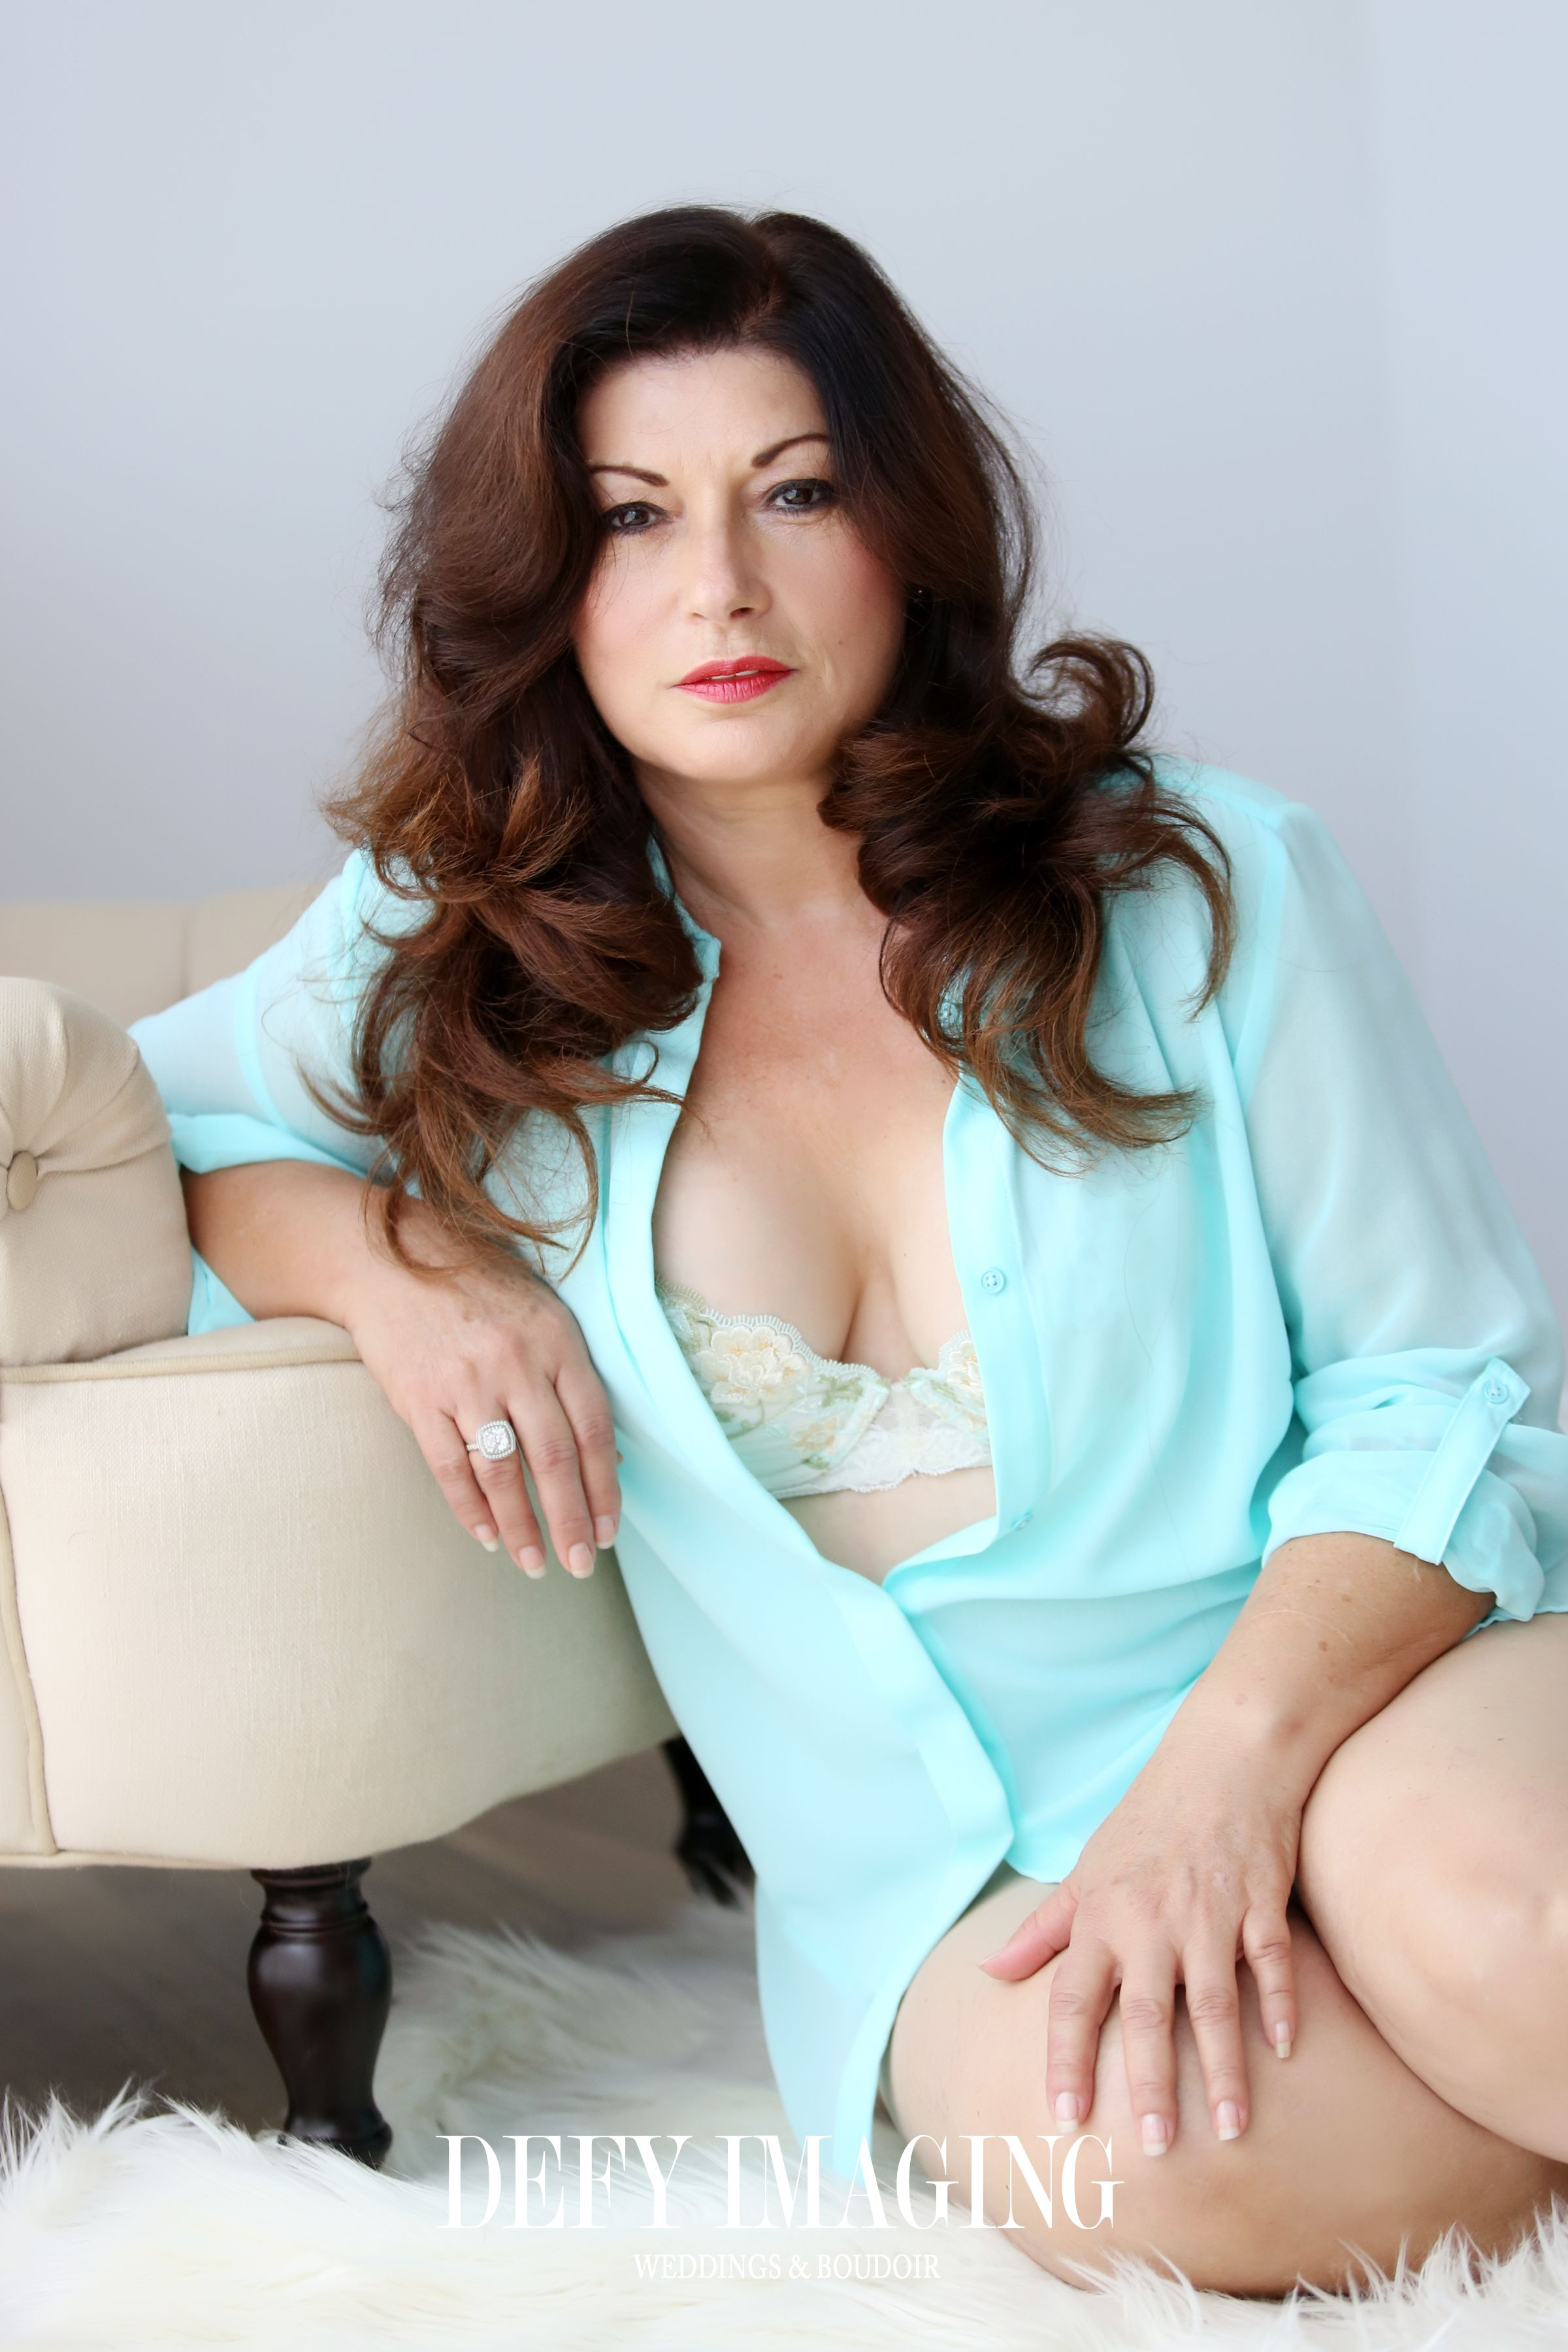 Mature boudoire photos